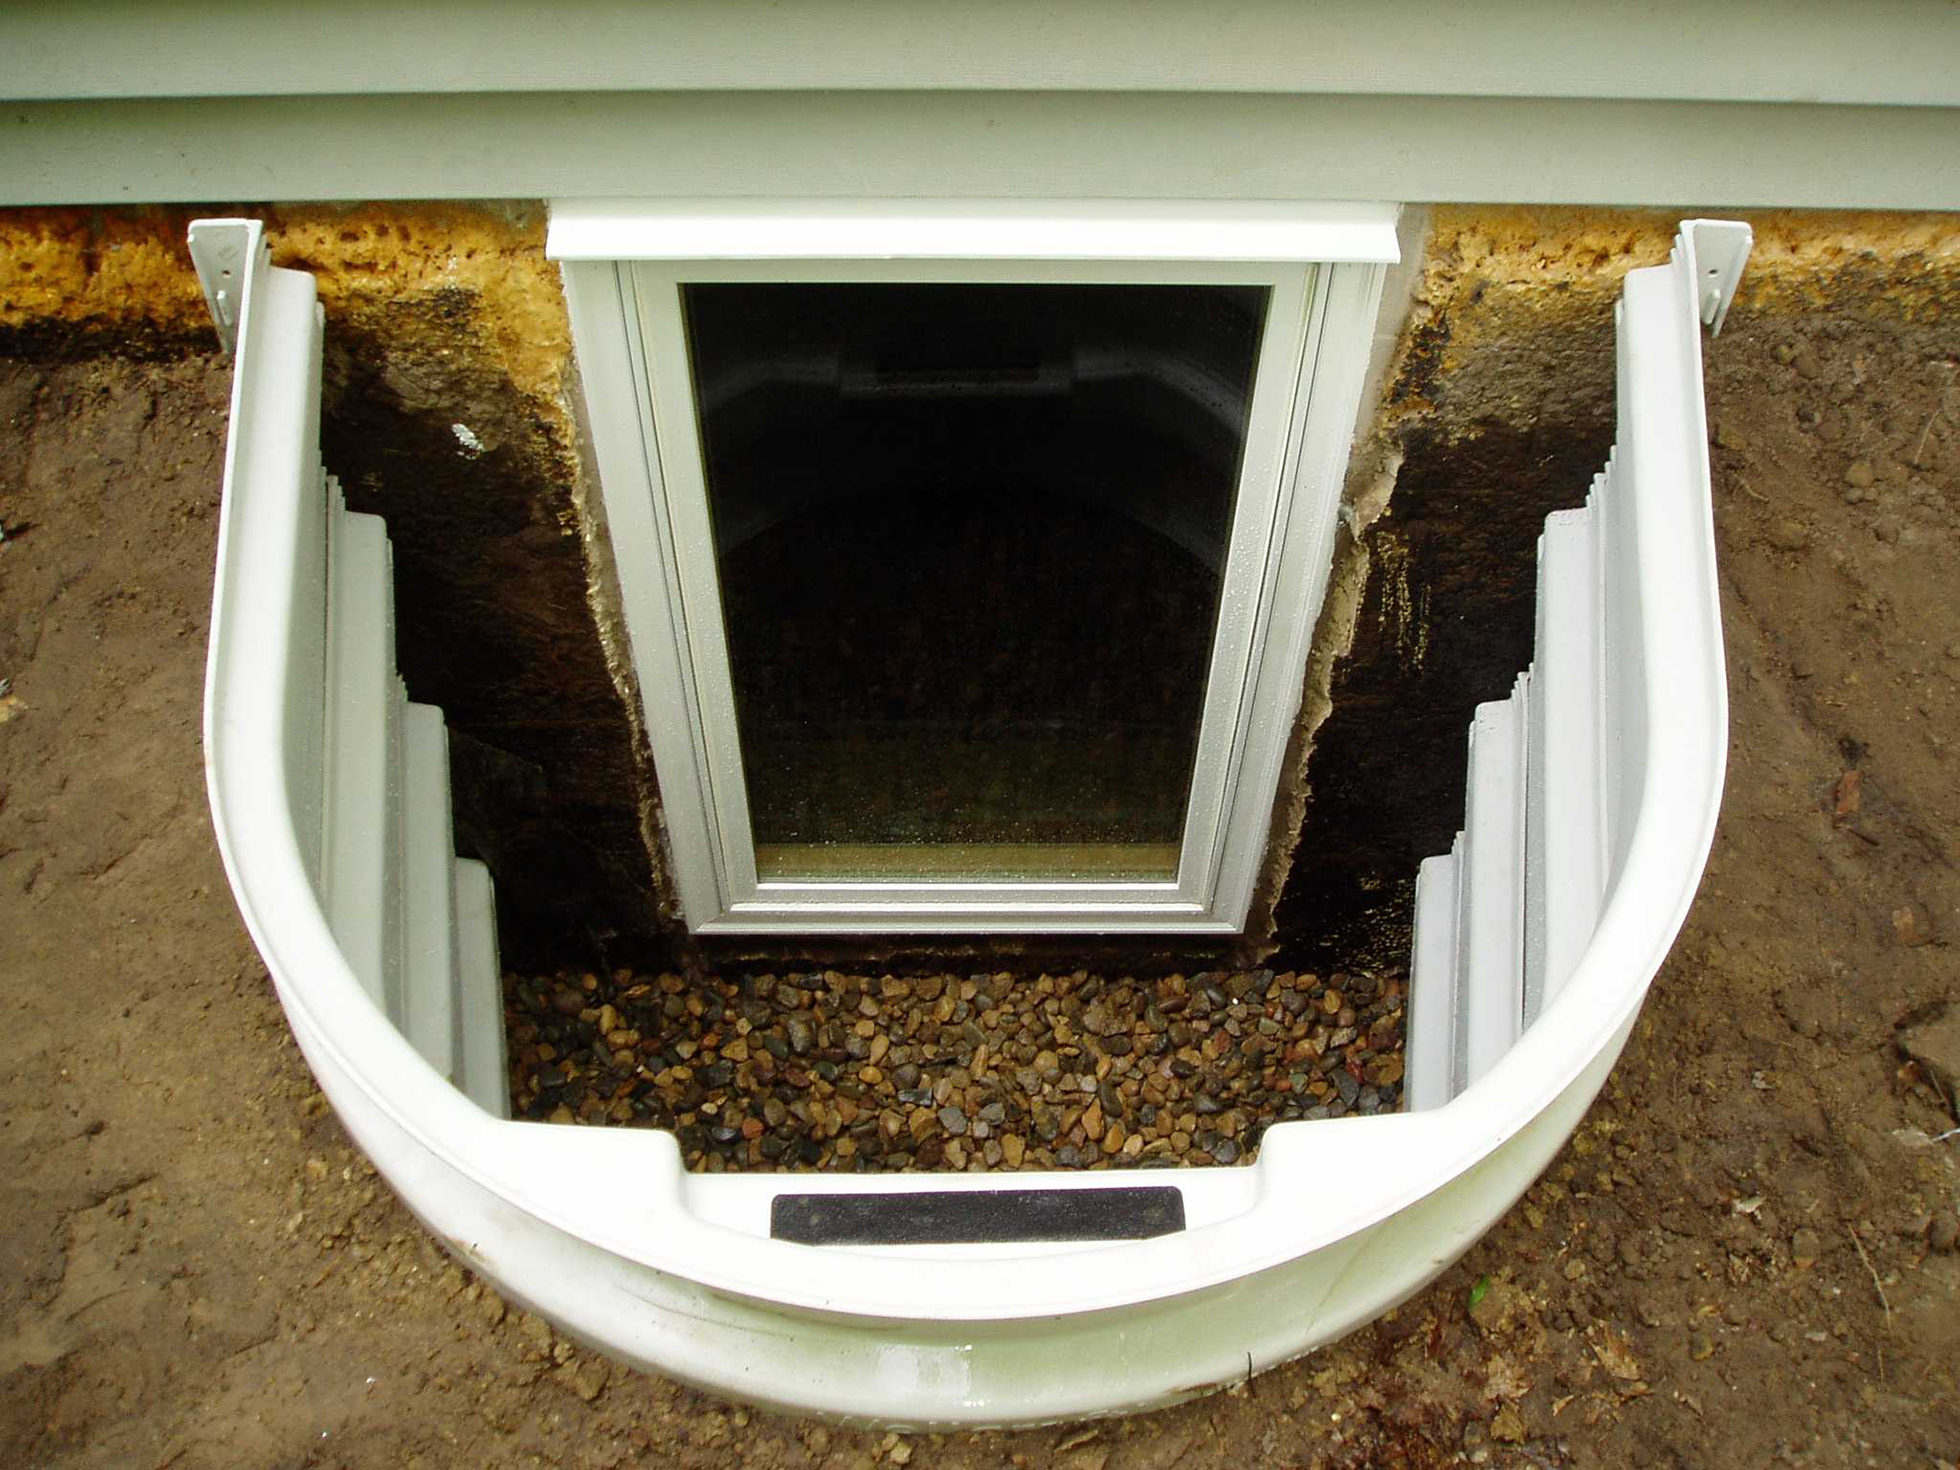 Newly installed egress window in a home